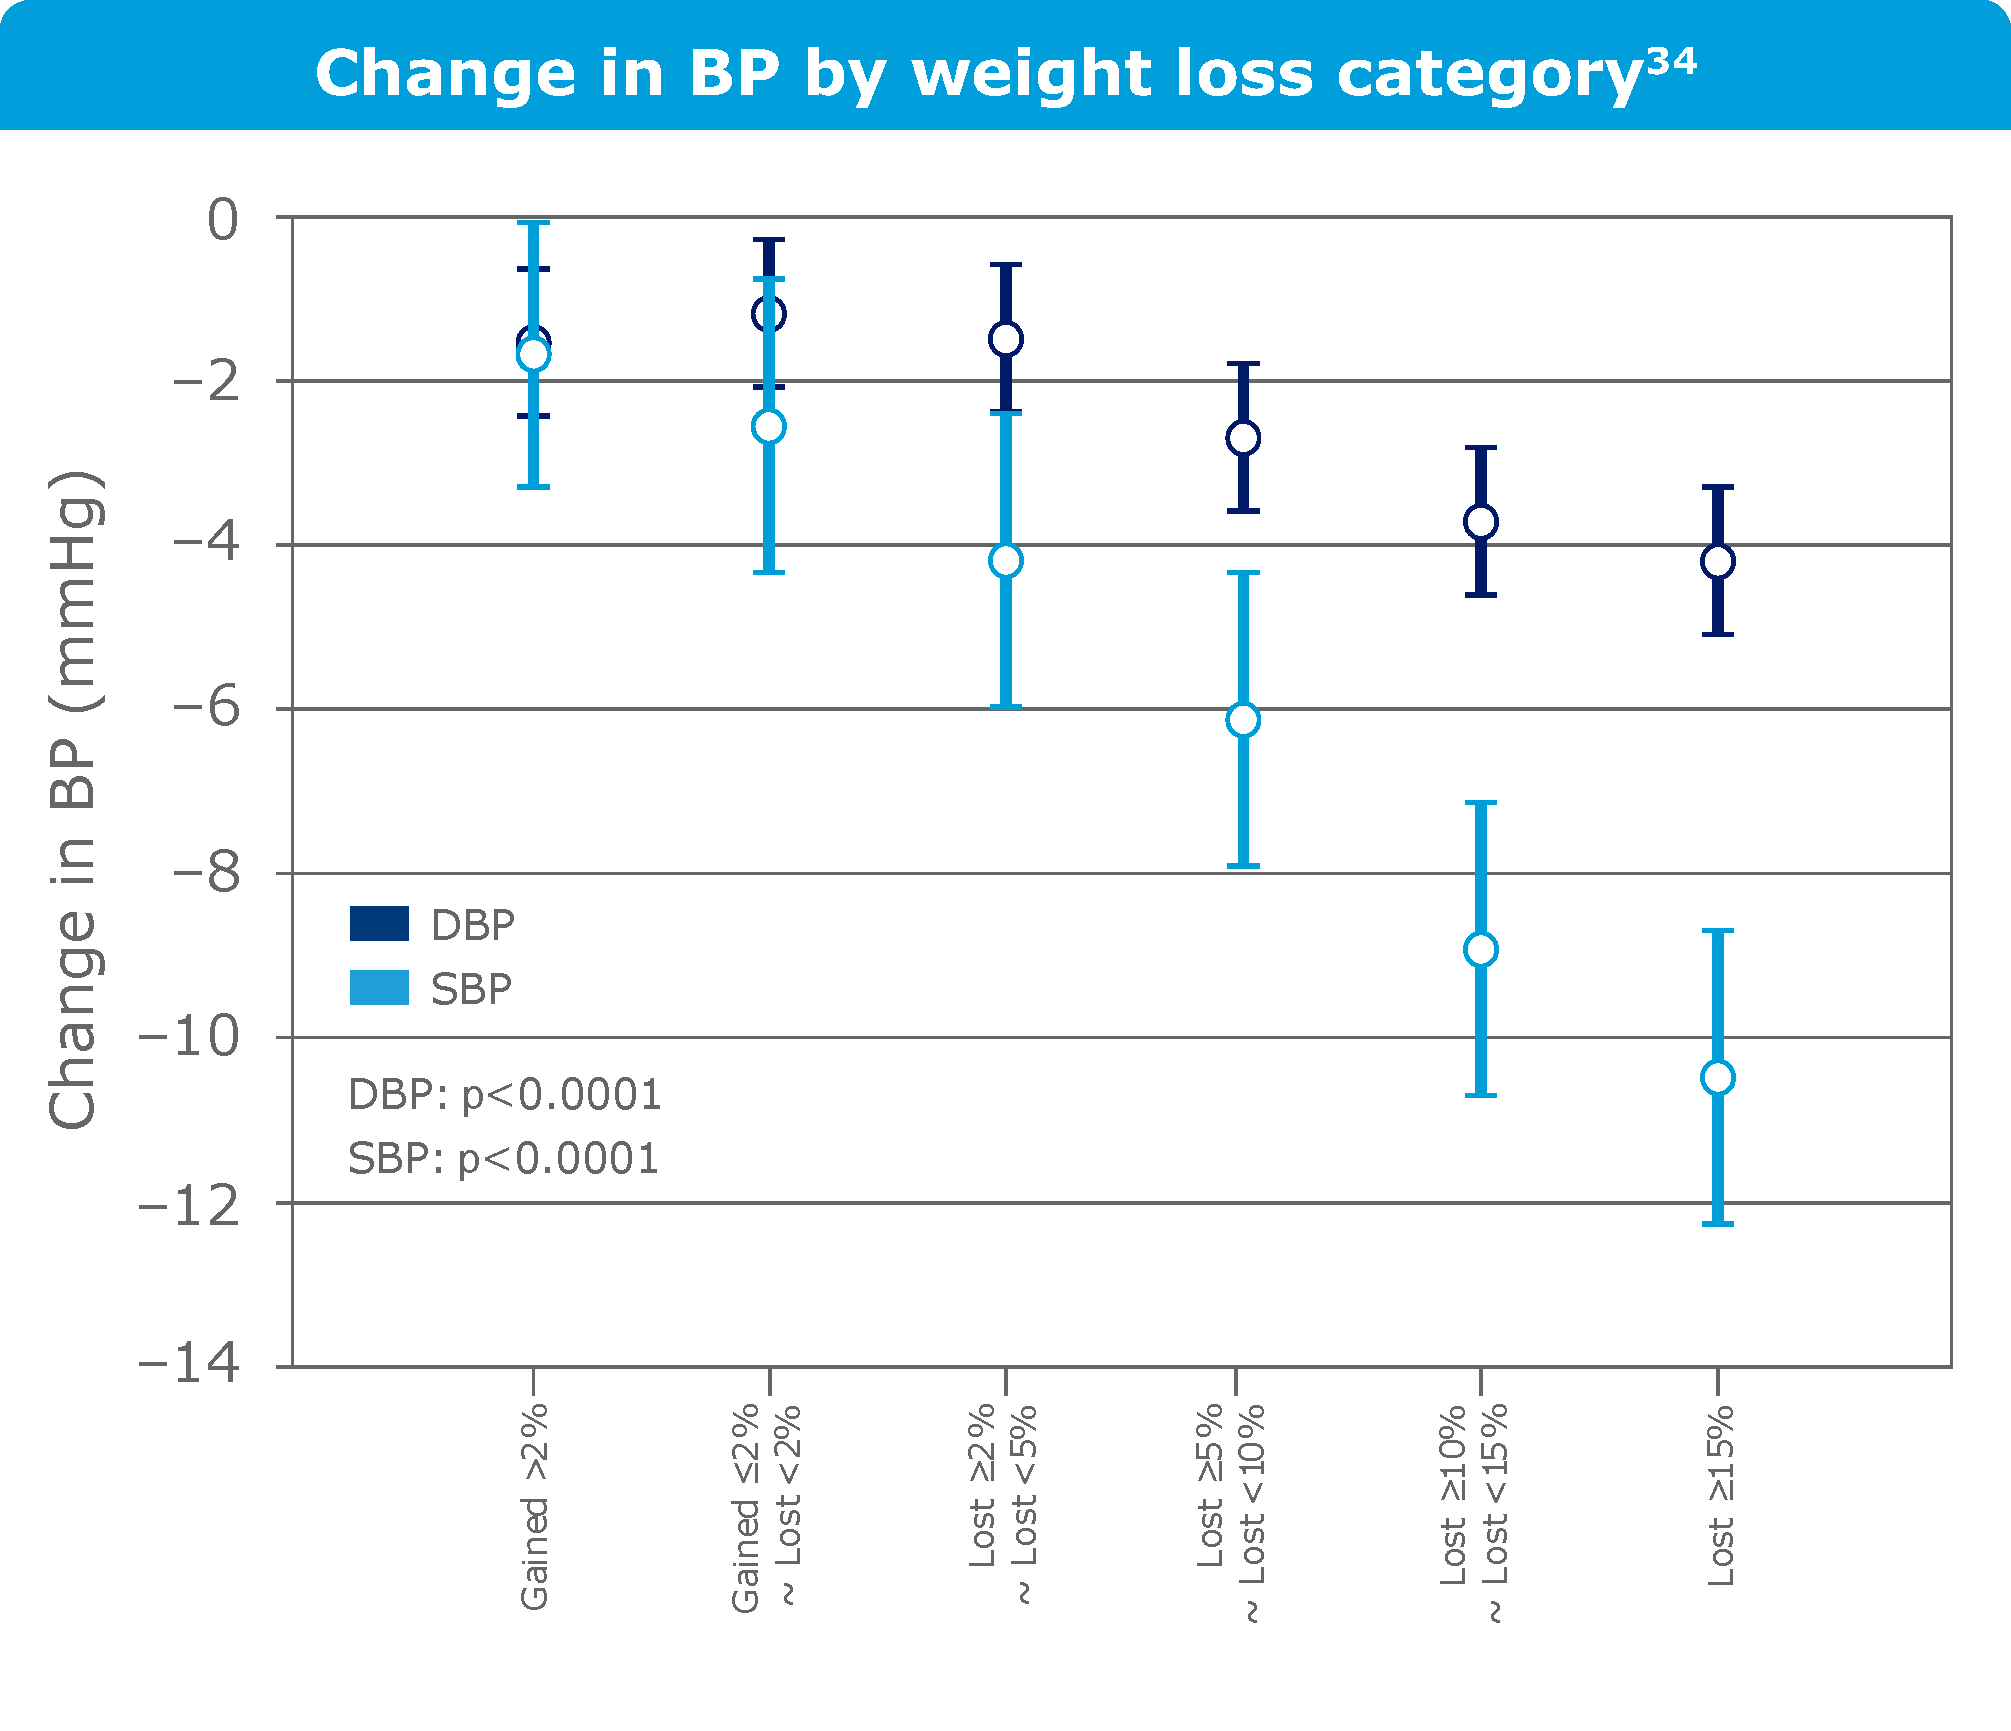 Change in blood pressure by weight loss category